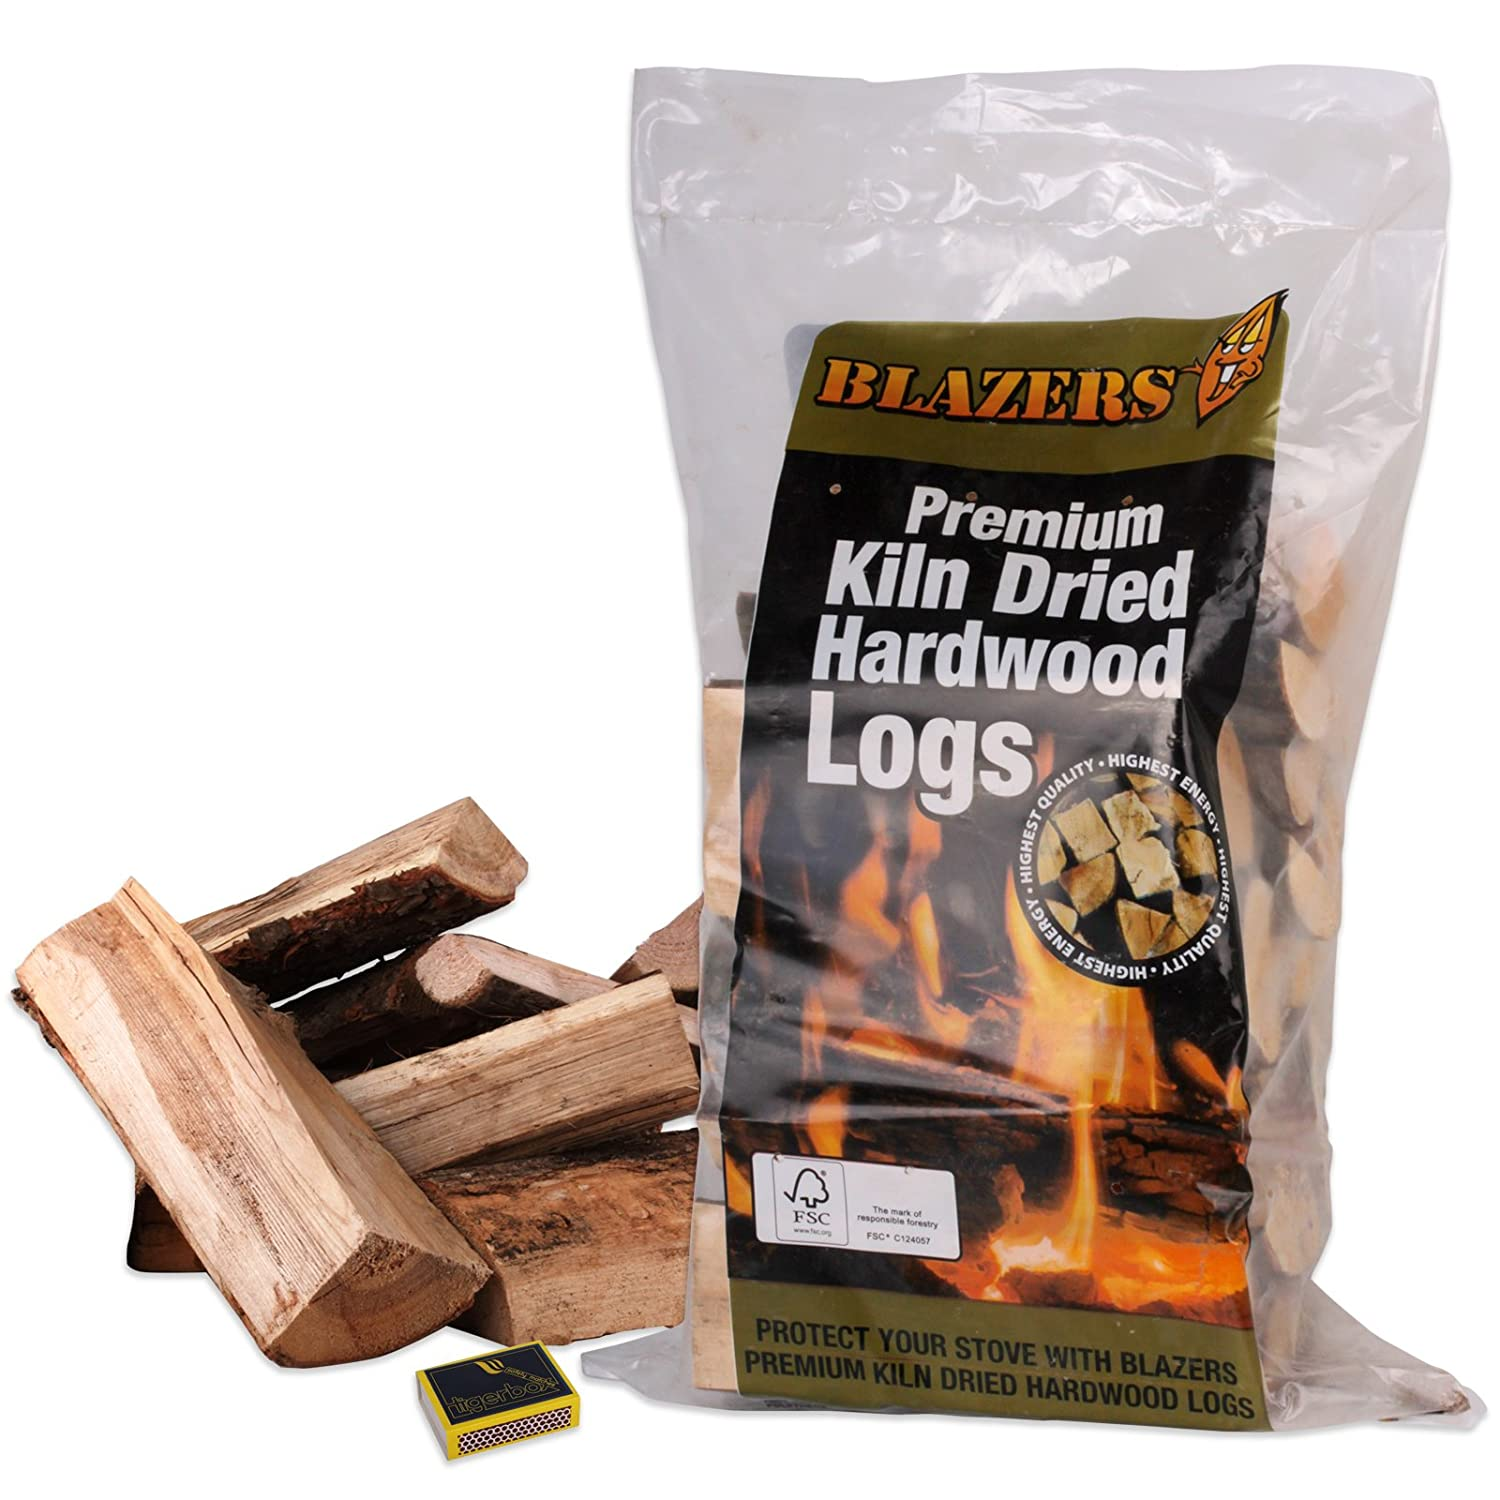 Blazers Kiln Dried Hardwood Logs & Tigerbox Safety Matches. Ideal for Open Fires, Stoves, Wood Log Burners, BBQ & Ovens etc Shop4accessories